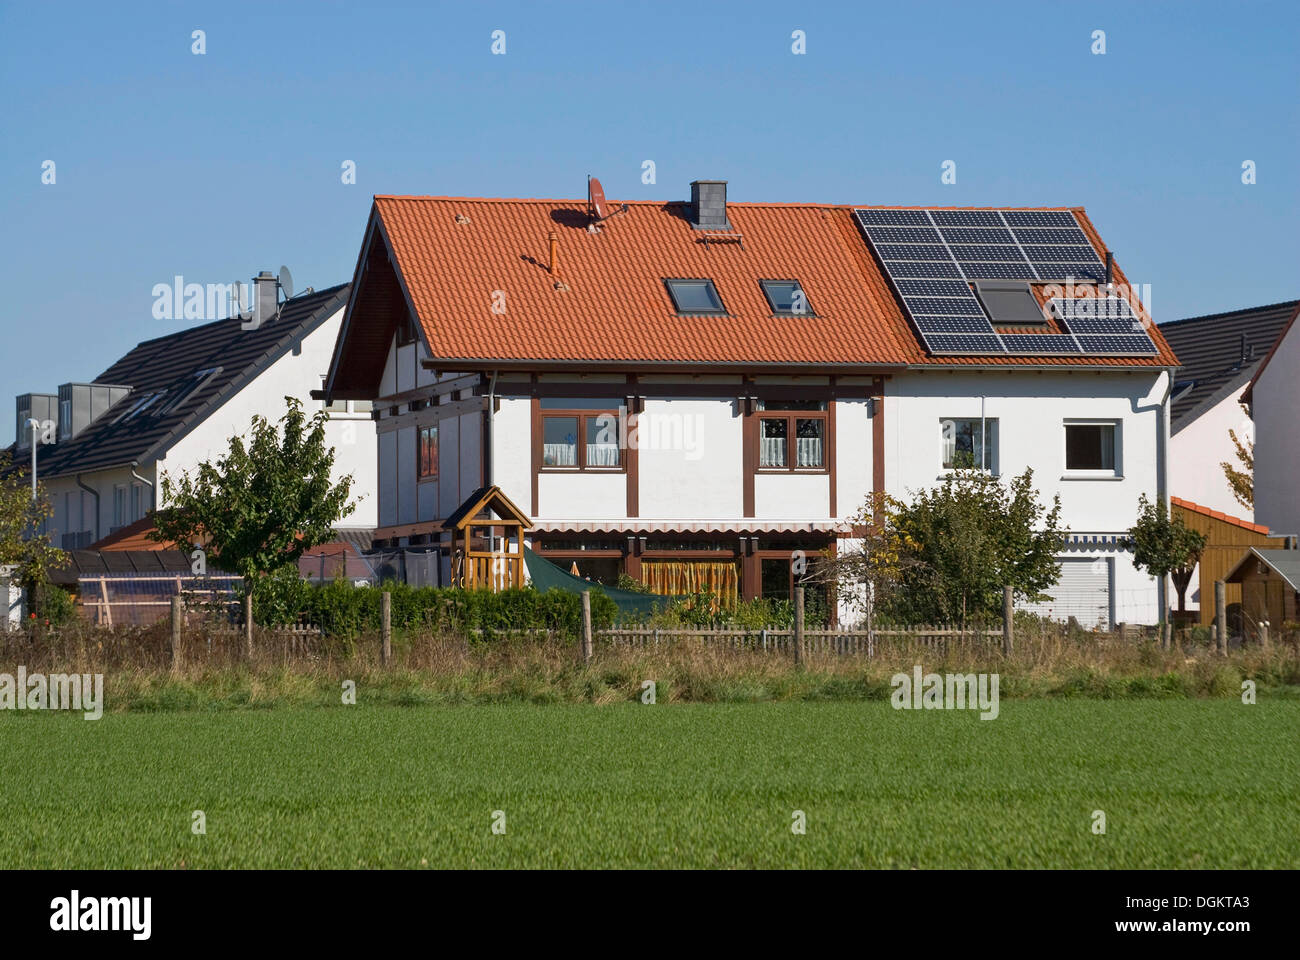 Multi-family house in a residential housing development with solar panels on the roof, PublicGround - Stock Image